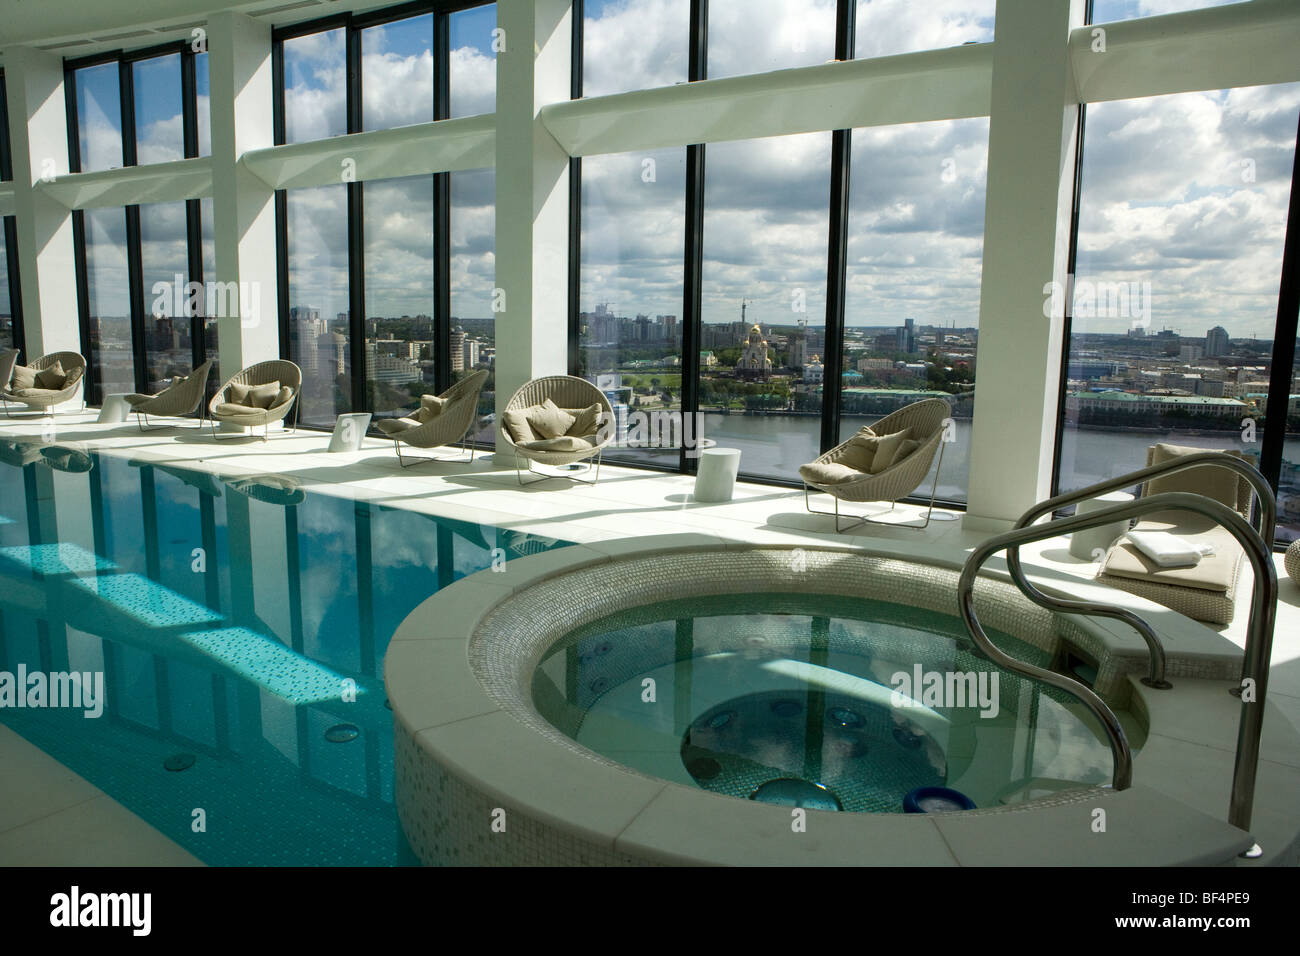 Modern interior with luxury swimming pool jacuzzi and